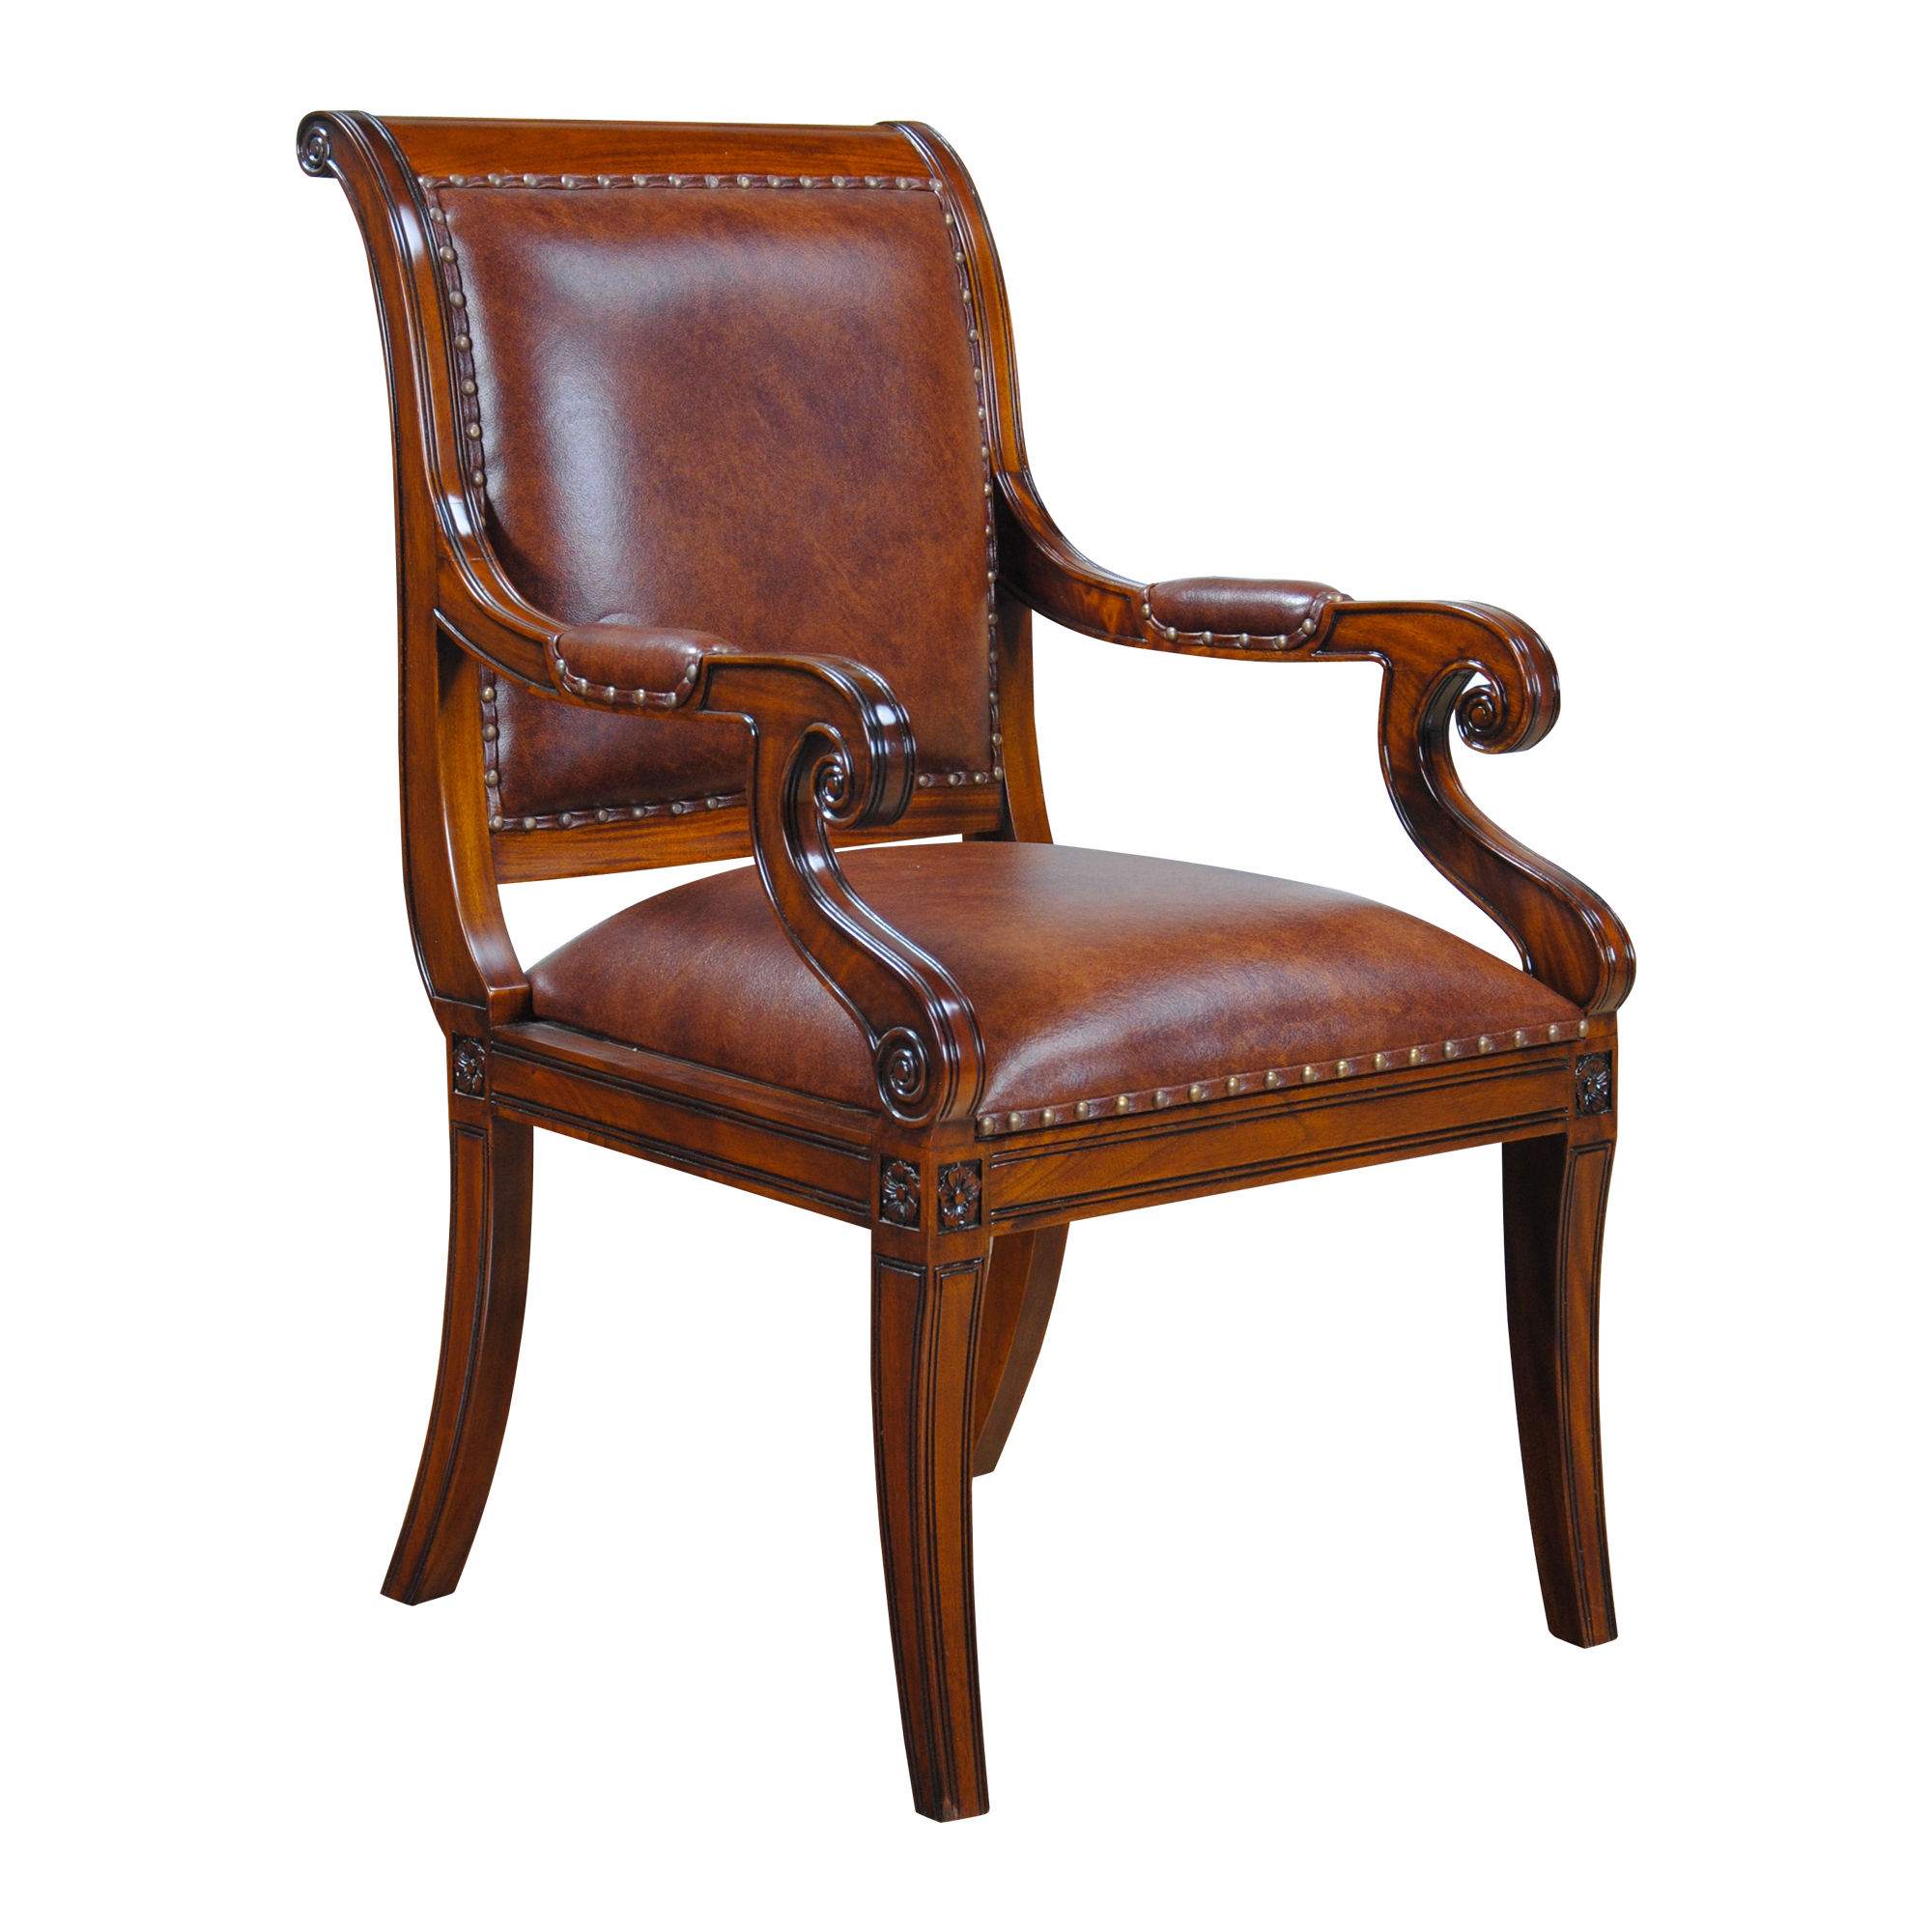 Regency Leather Arm Chair Niagara Furniture full grain leather